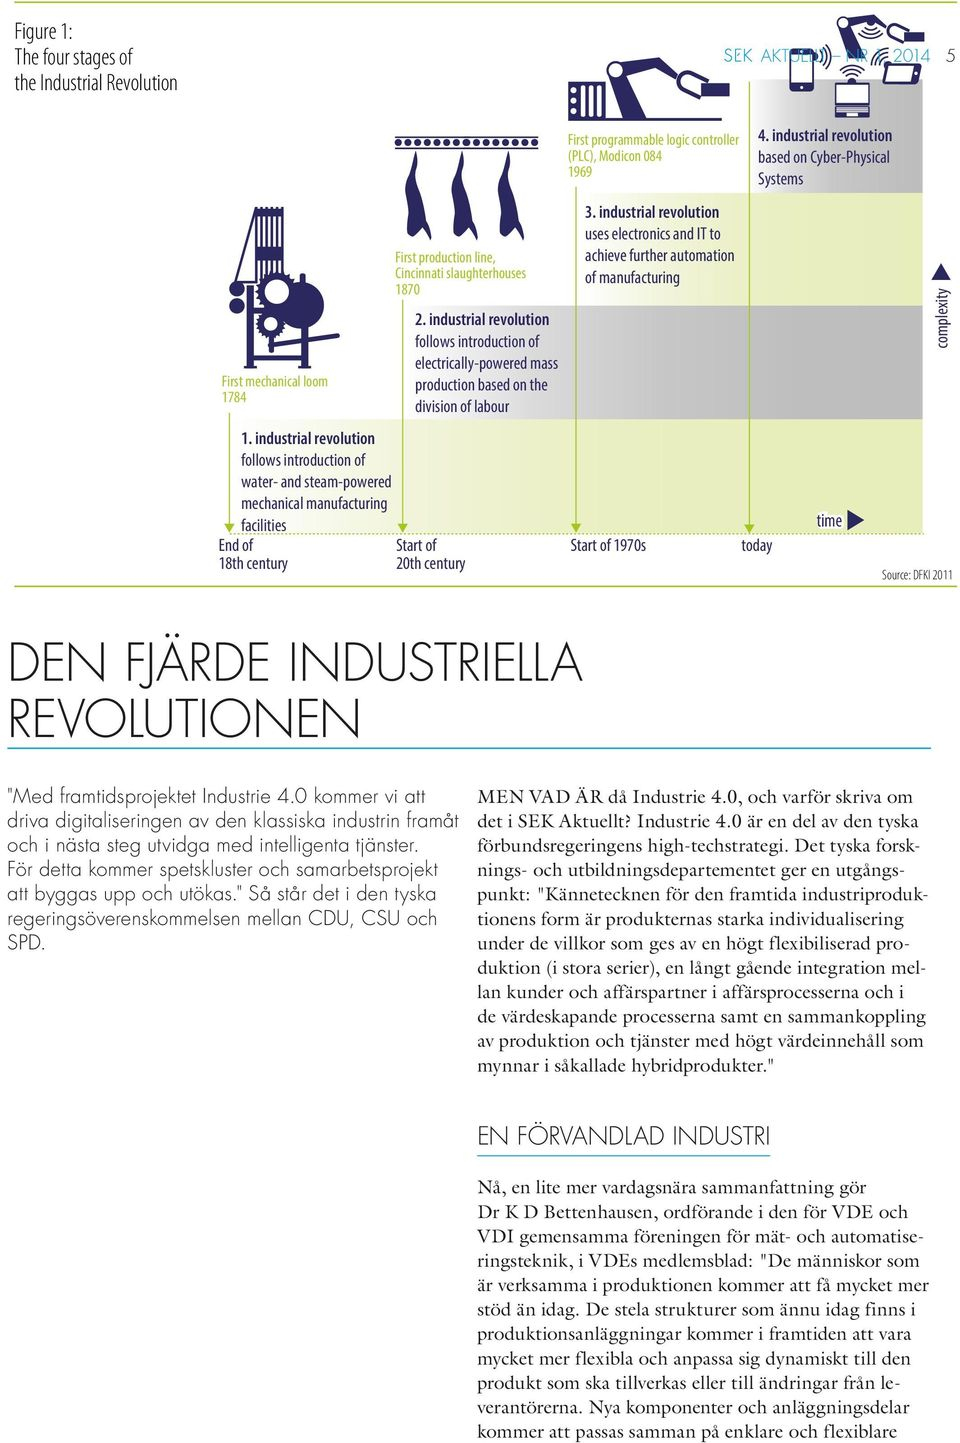 industrial revolution follows introduction of electrically-powered mass production based on the division of labour Start of 20th century First programmable logic controller (PLC), Modicon 084 1969 3.